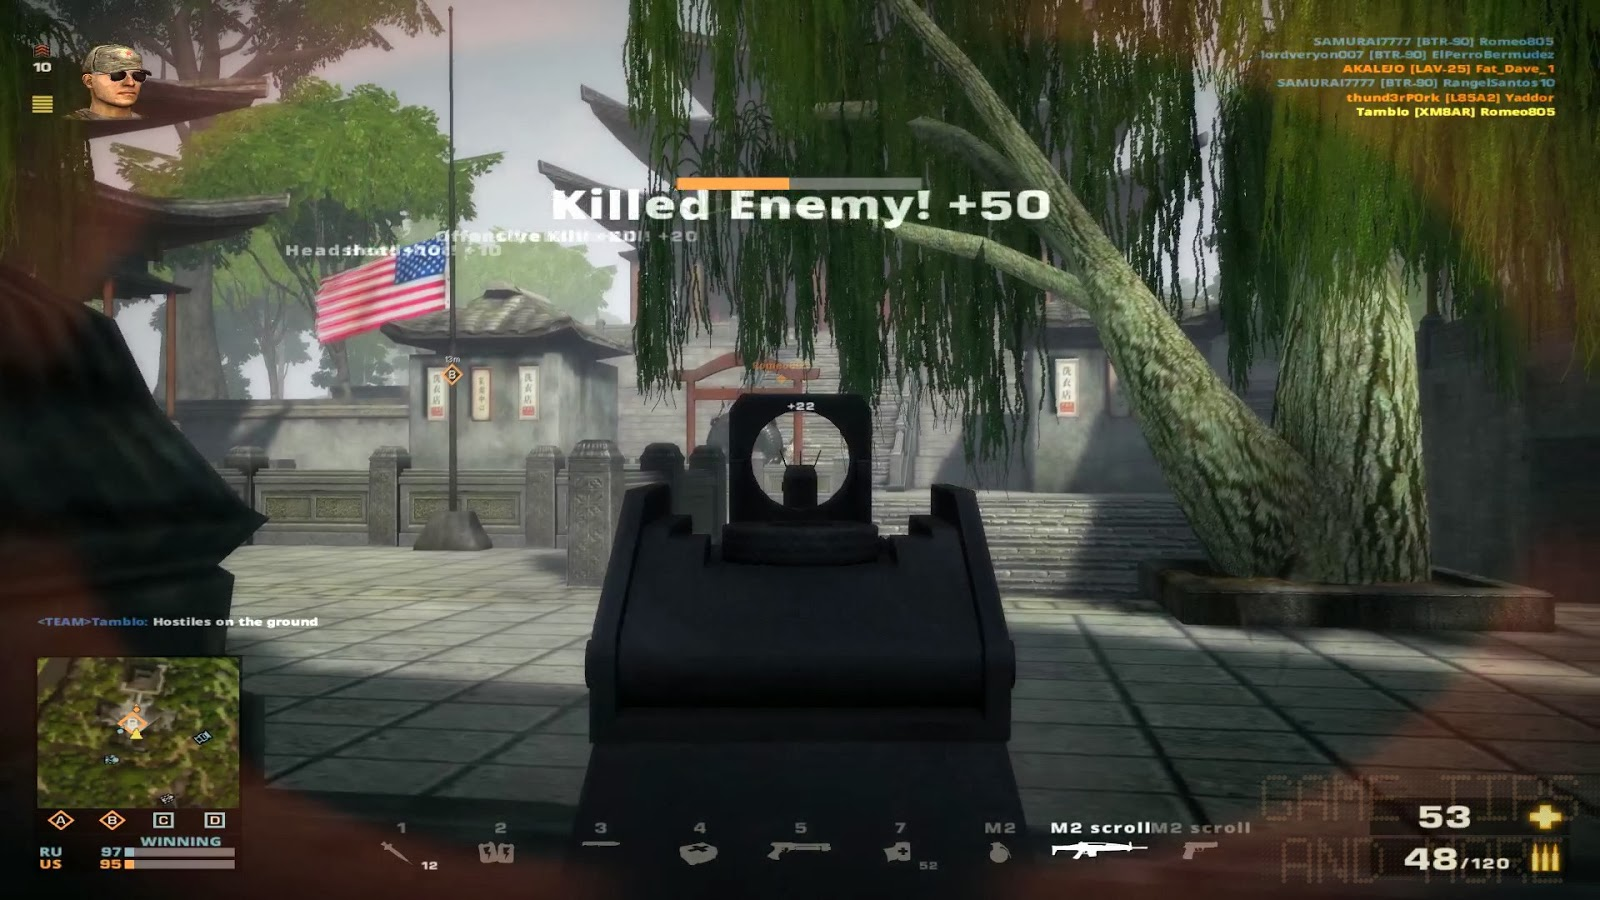 The Game Tips And More Blog: Battlefield Play4Free